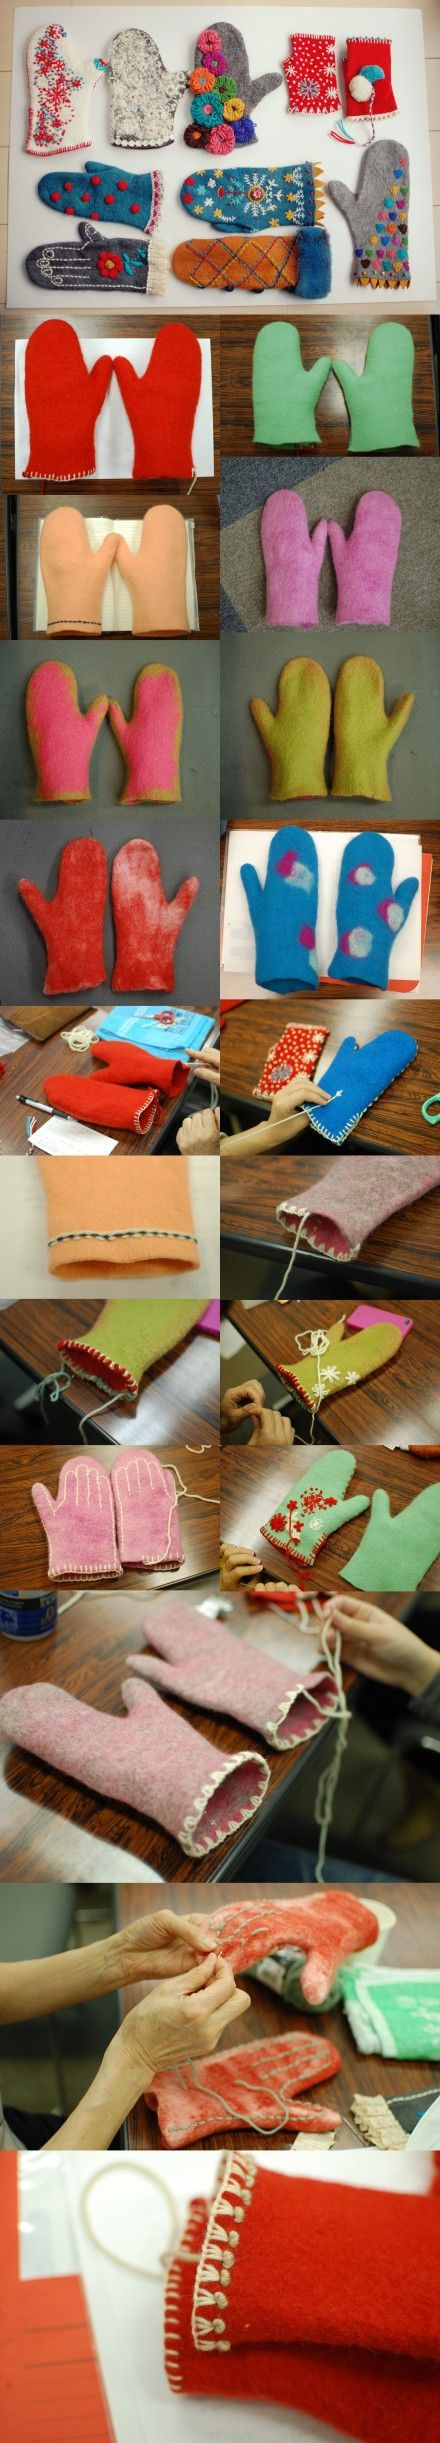 DIY simple non-woven gloves I just love this and plan to do it in class!